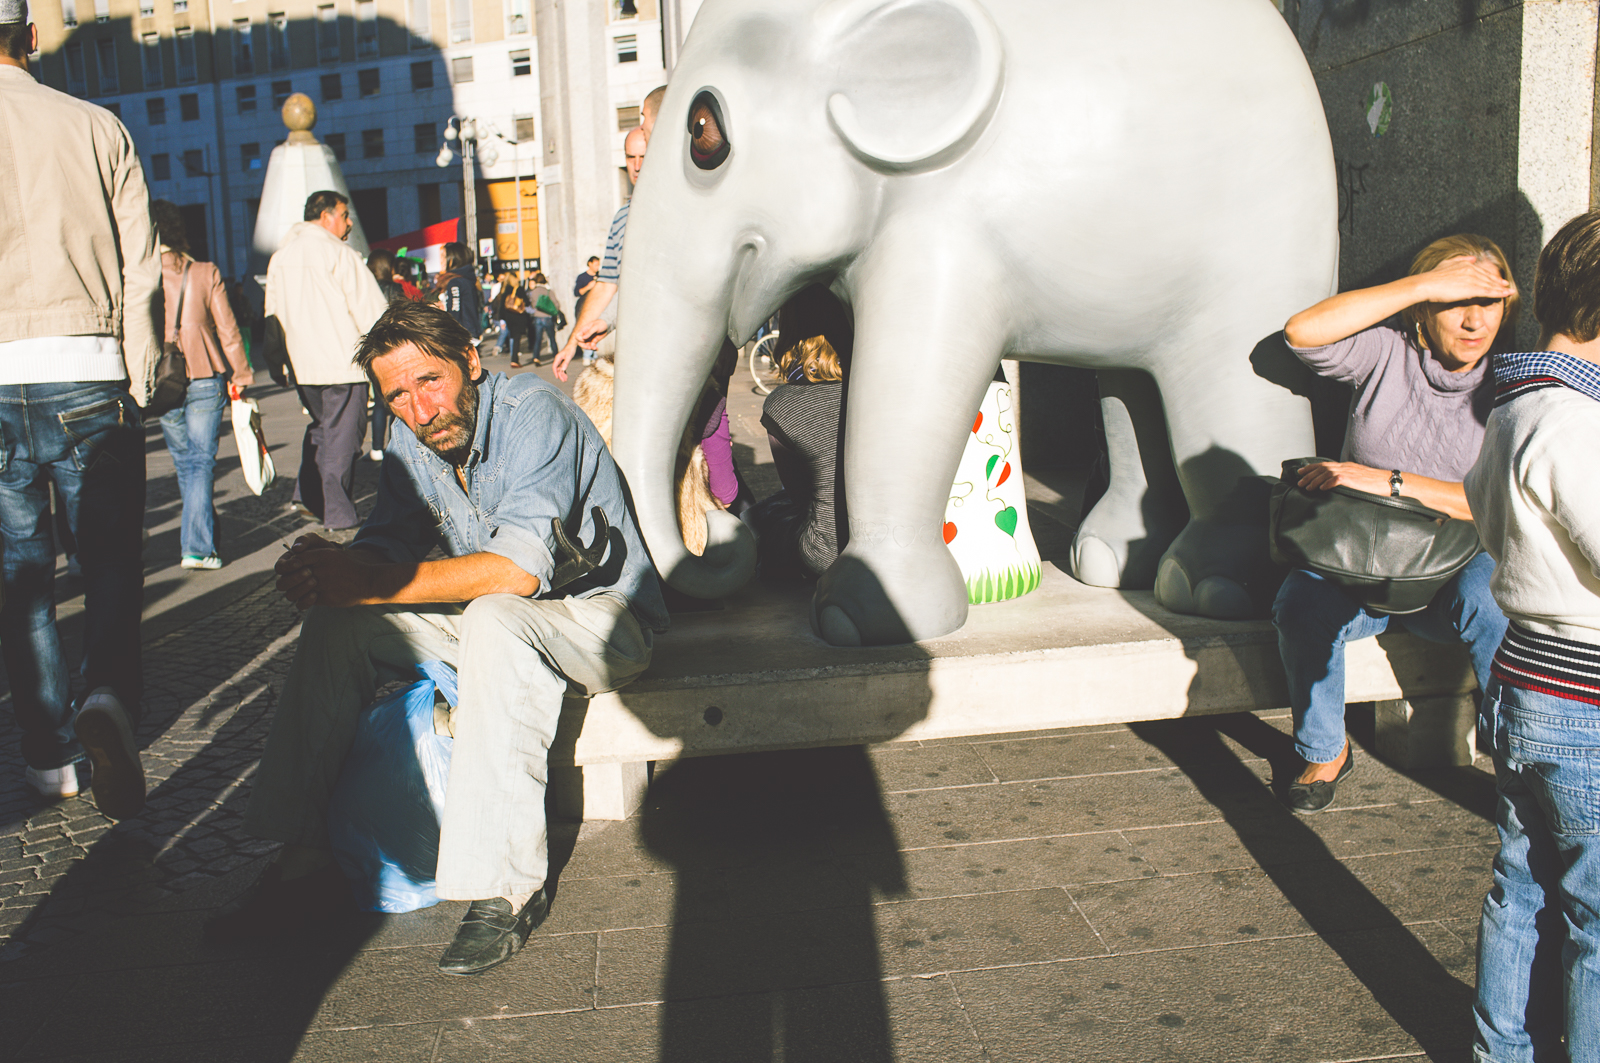 The elephant in the square (Milan)